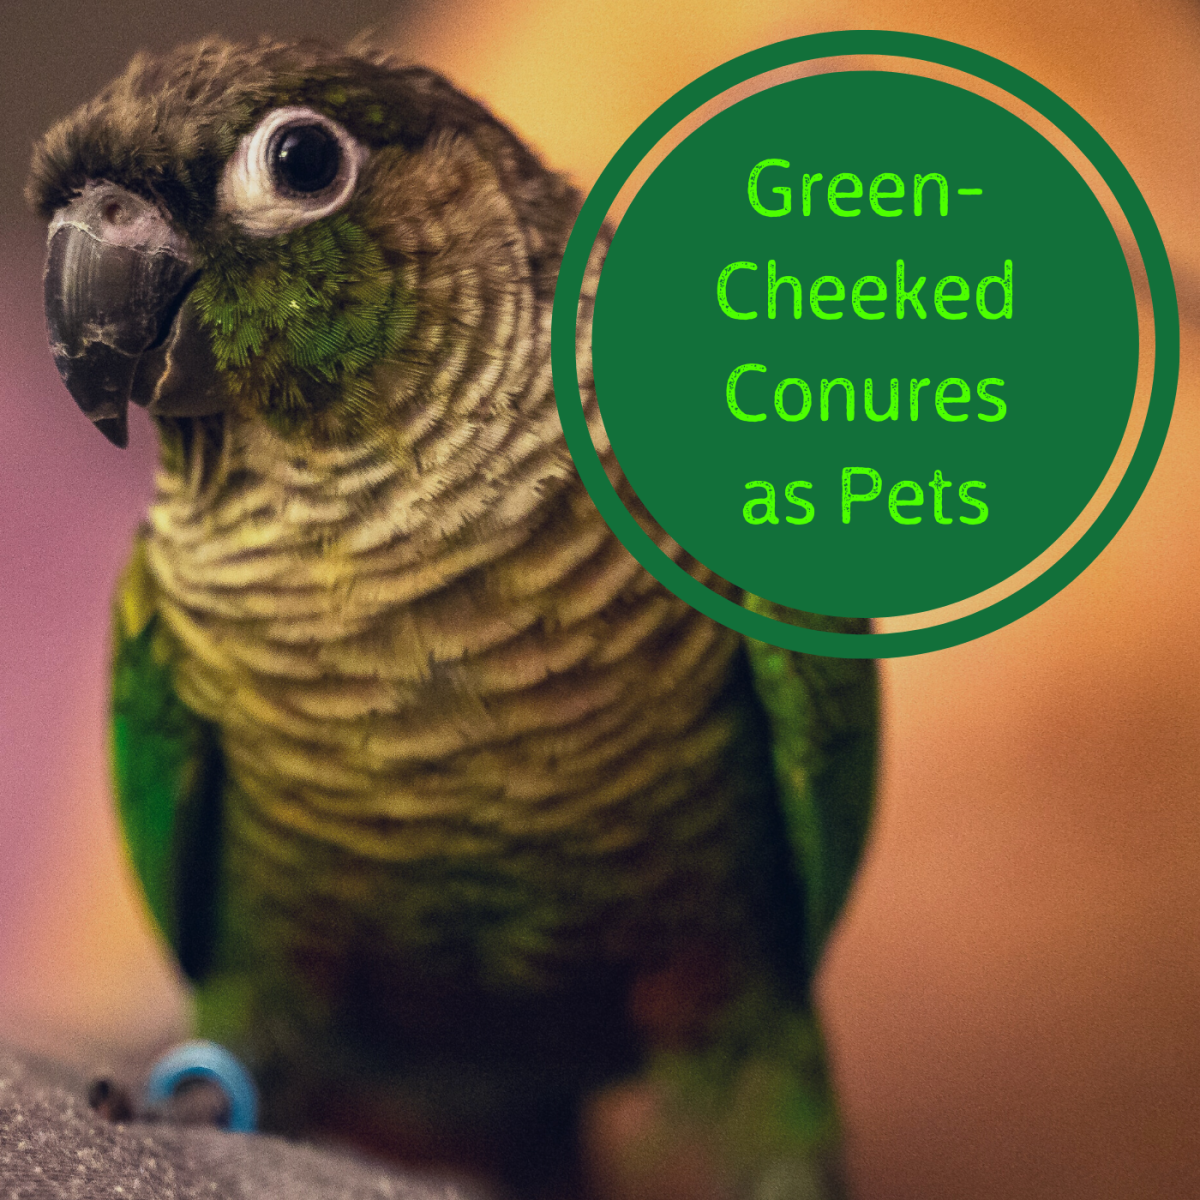 How to Care for a Green-Cheeked Conure Parrot